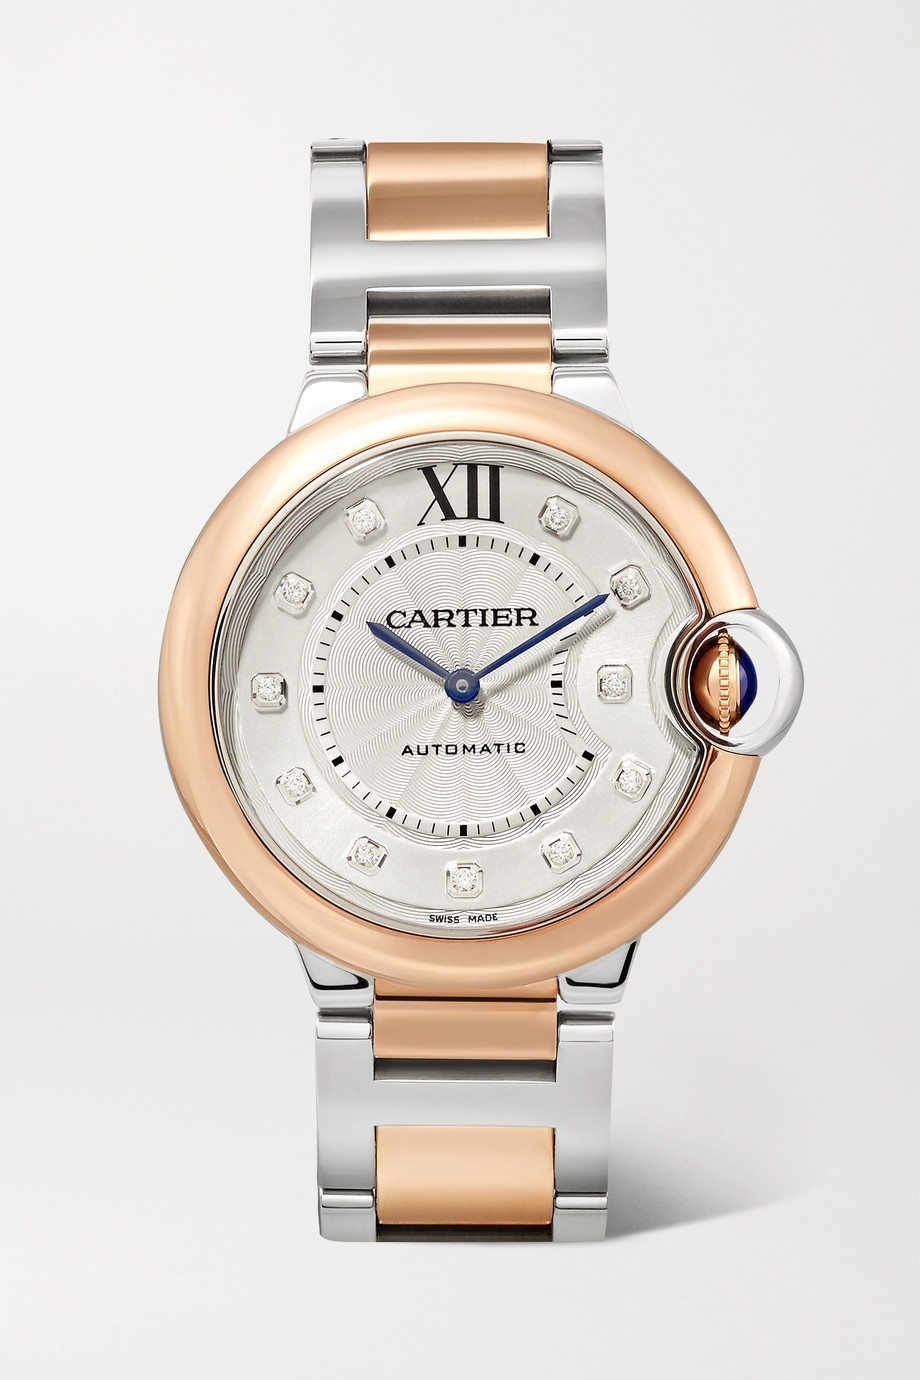 CARTIER Ballon Bleu de Cartier 36mm 18-karat rose gold, stainless steel and diamond watch